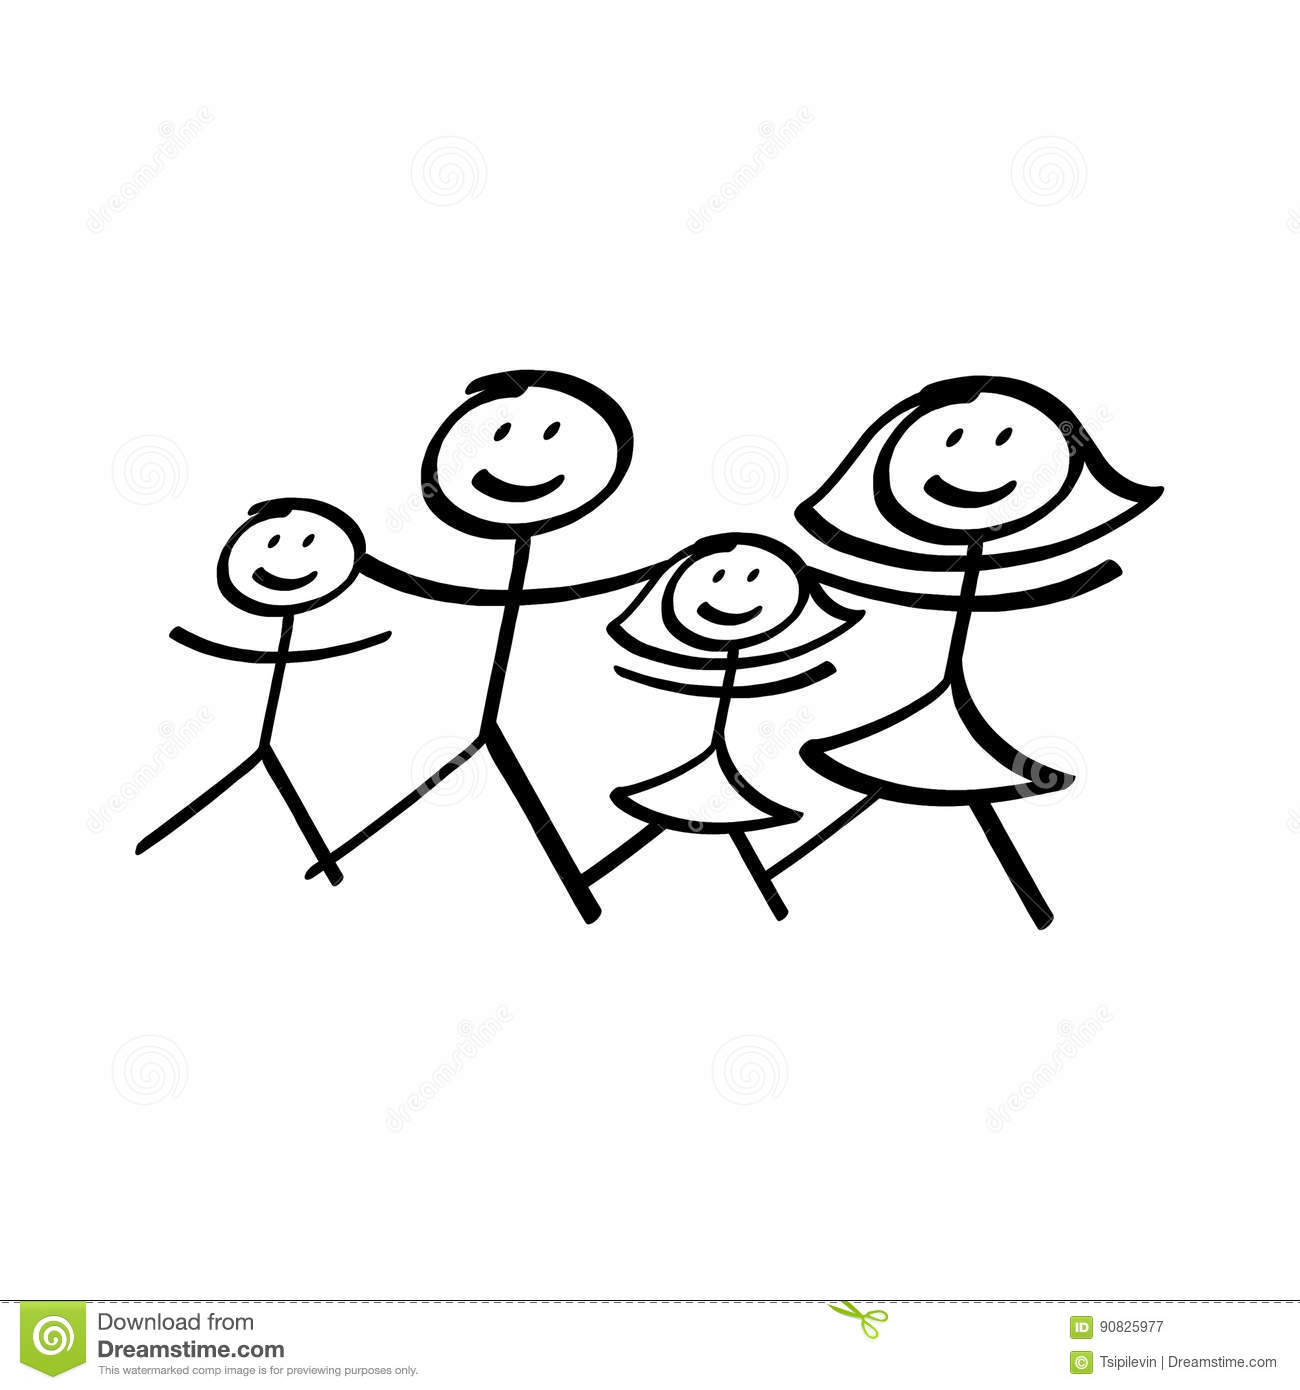 Family Of Stick Figures Illustration Stock Illustration